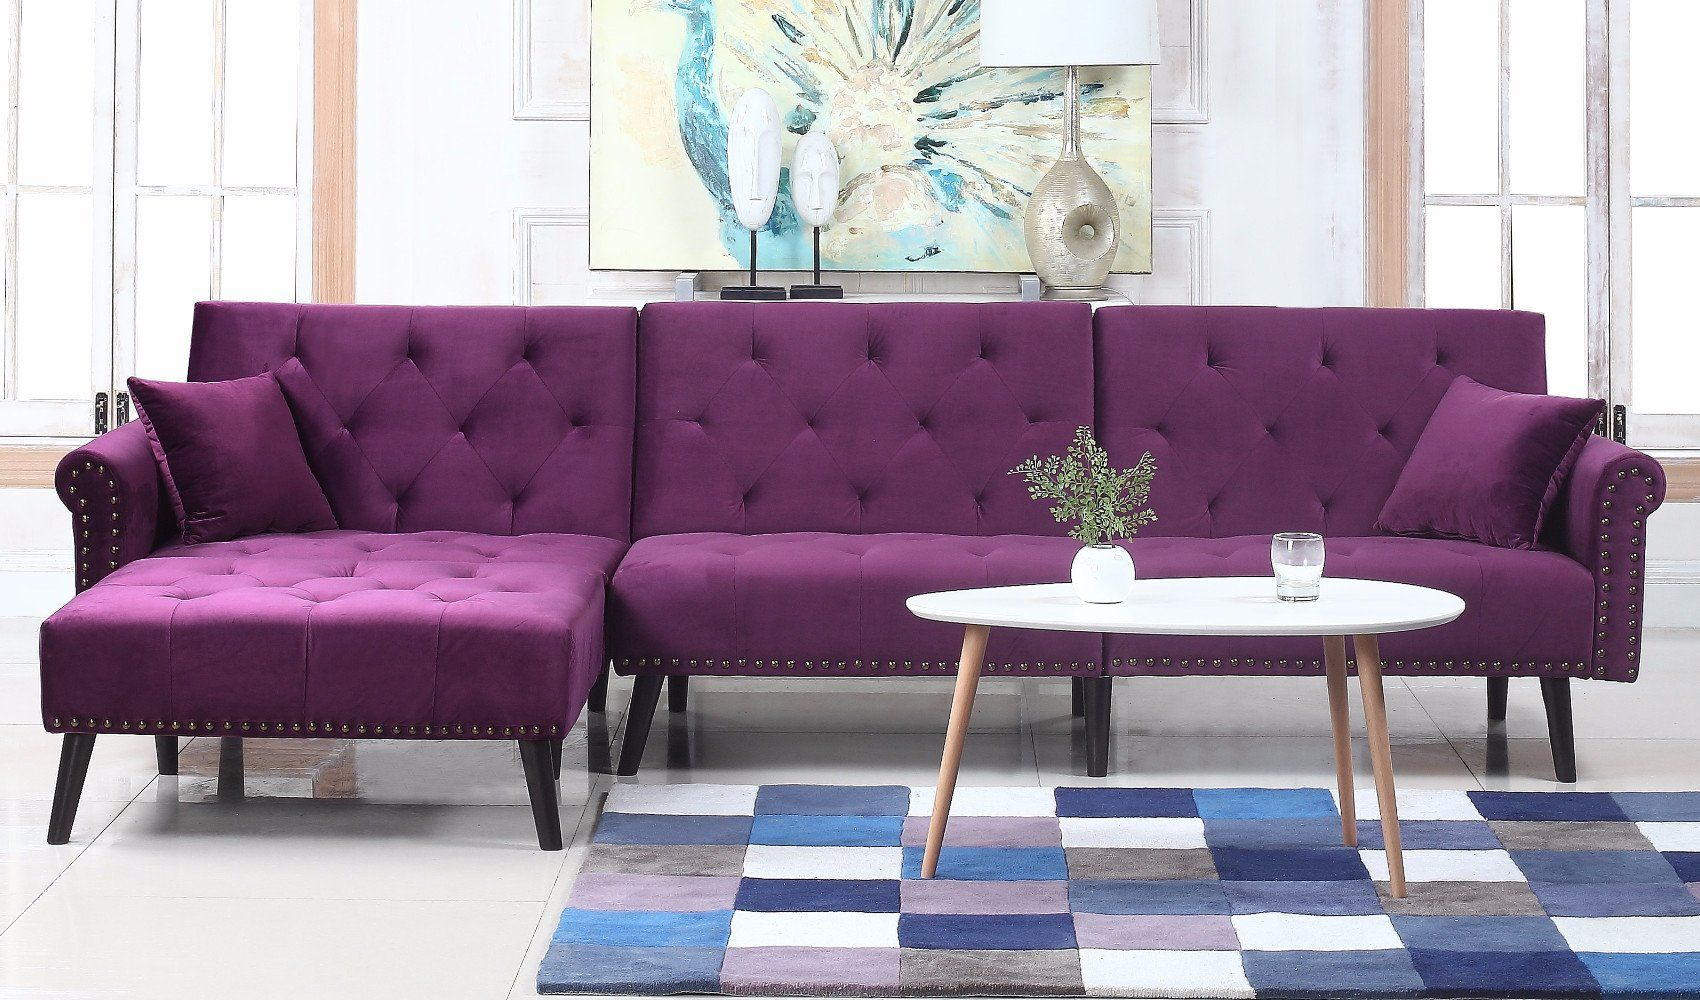 Velvet Sleeper Futon Sofa L Shape Sectional Couch w/ Reclining Backrest u0026 Chaise Lounge : purple sectional sofa chaise - Sectionals, Sofas & Couches